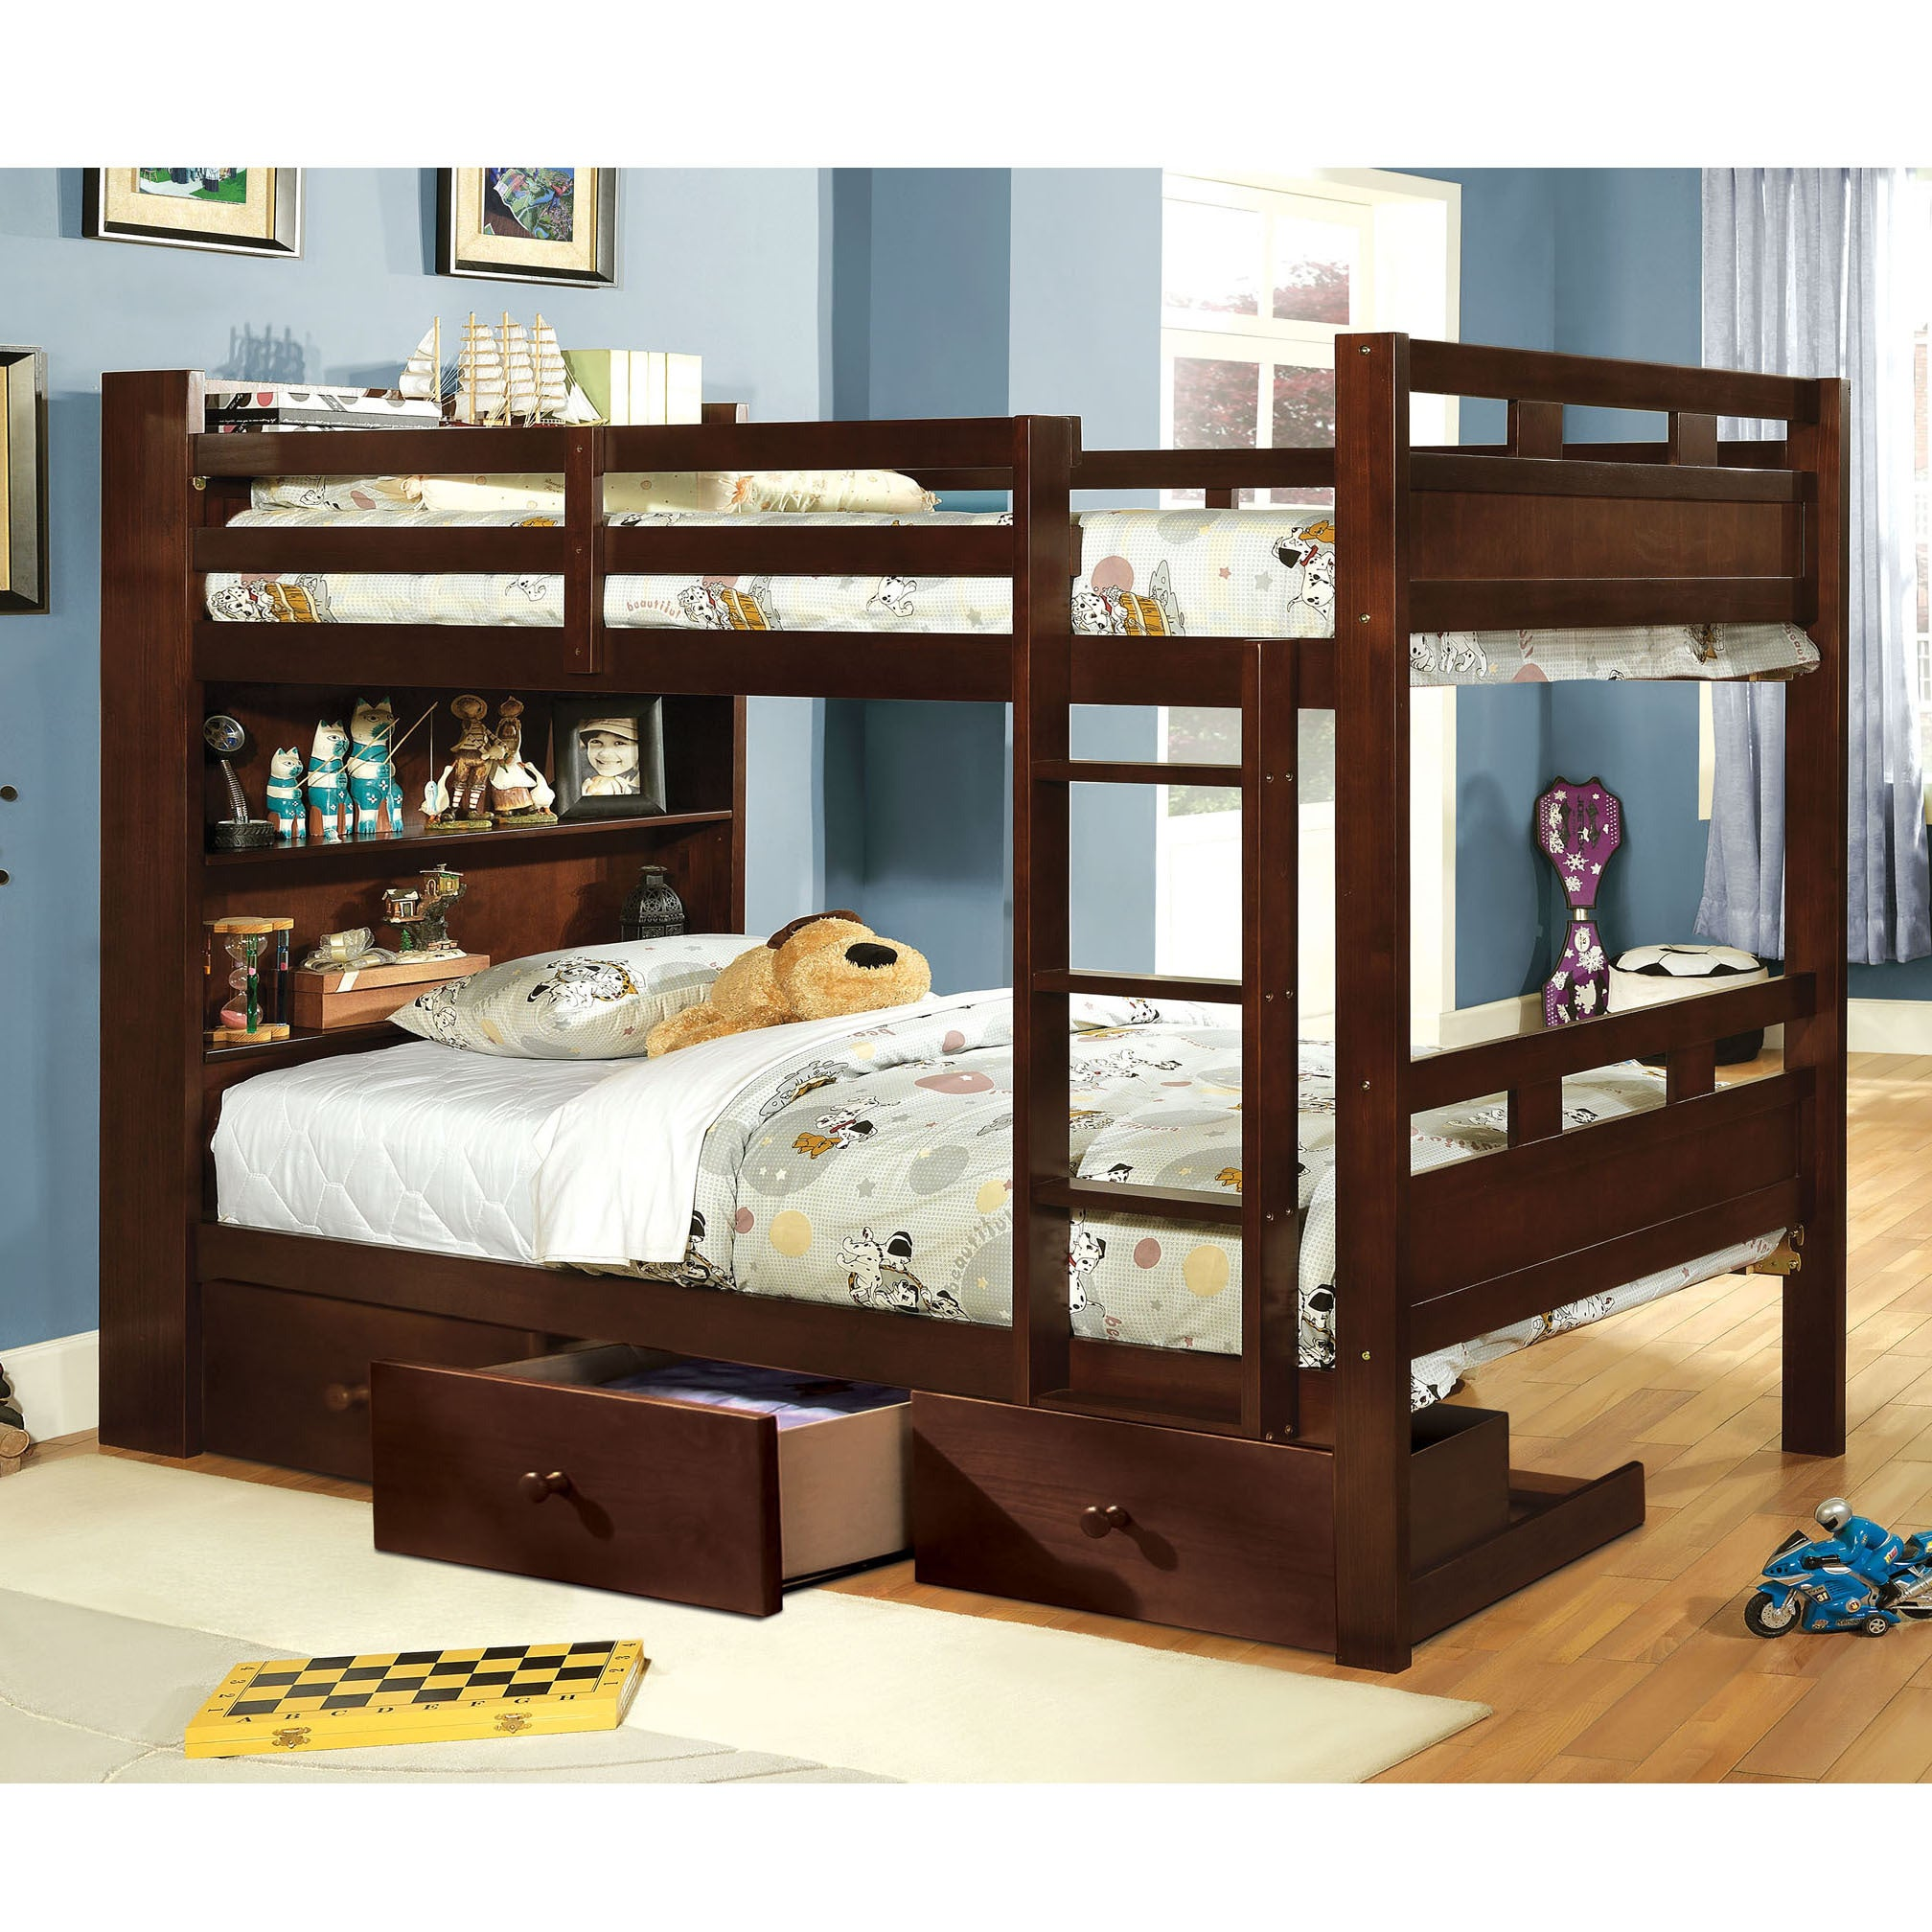 Furniture Of America Chessin Dark Walnut Bunk Bed With Built In Bookcase Headboard On Free Shipping Today 9206909